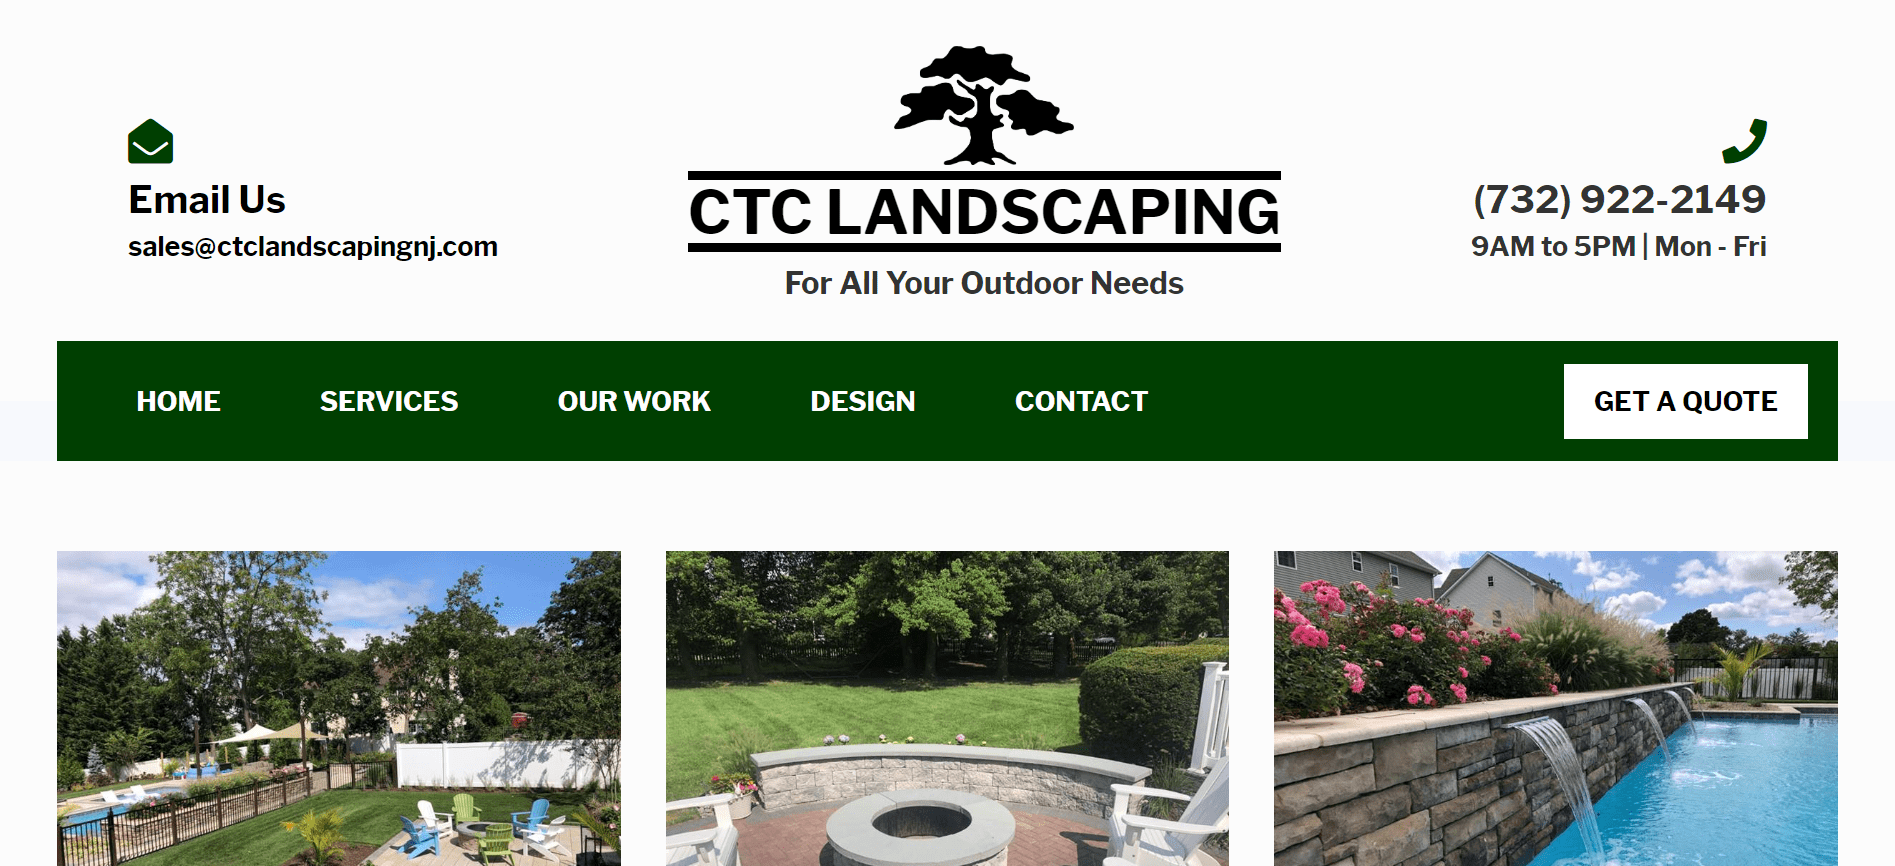 CTC Landscaping website by Jesse The Web Guy